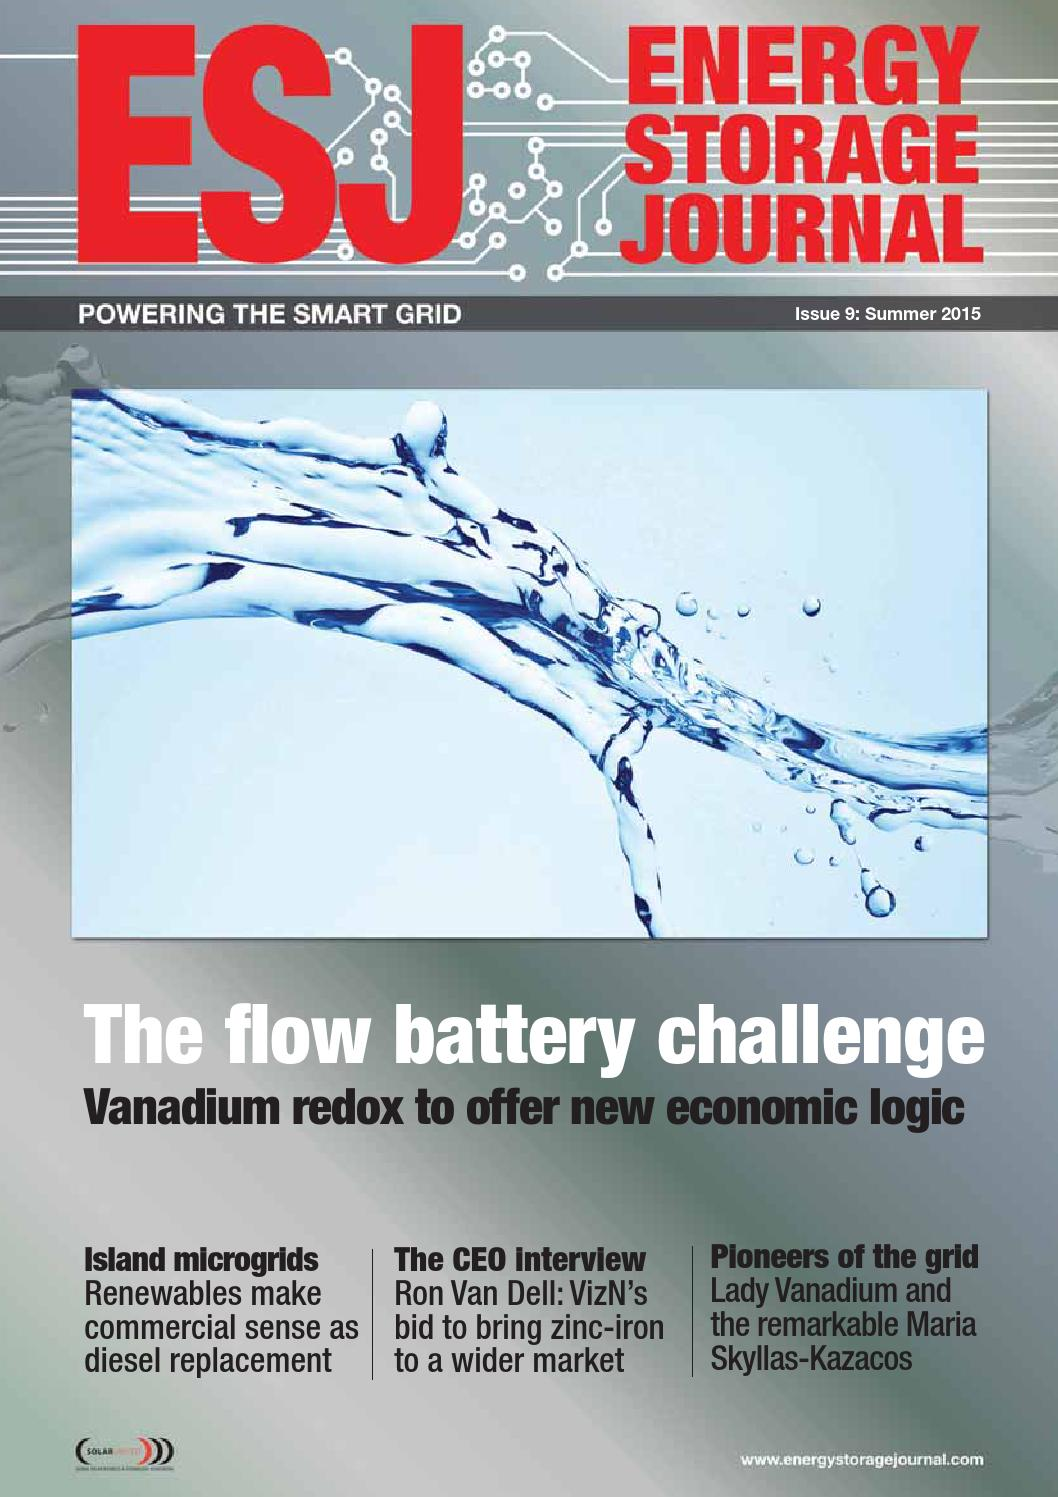 Energy Storage Journal - Summer 2015 - issue 9 by hamptonhalls - issuu